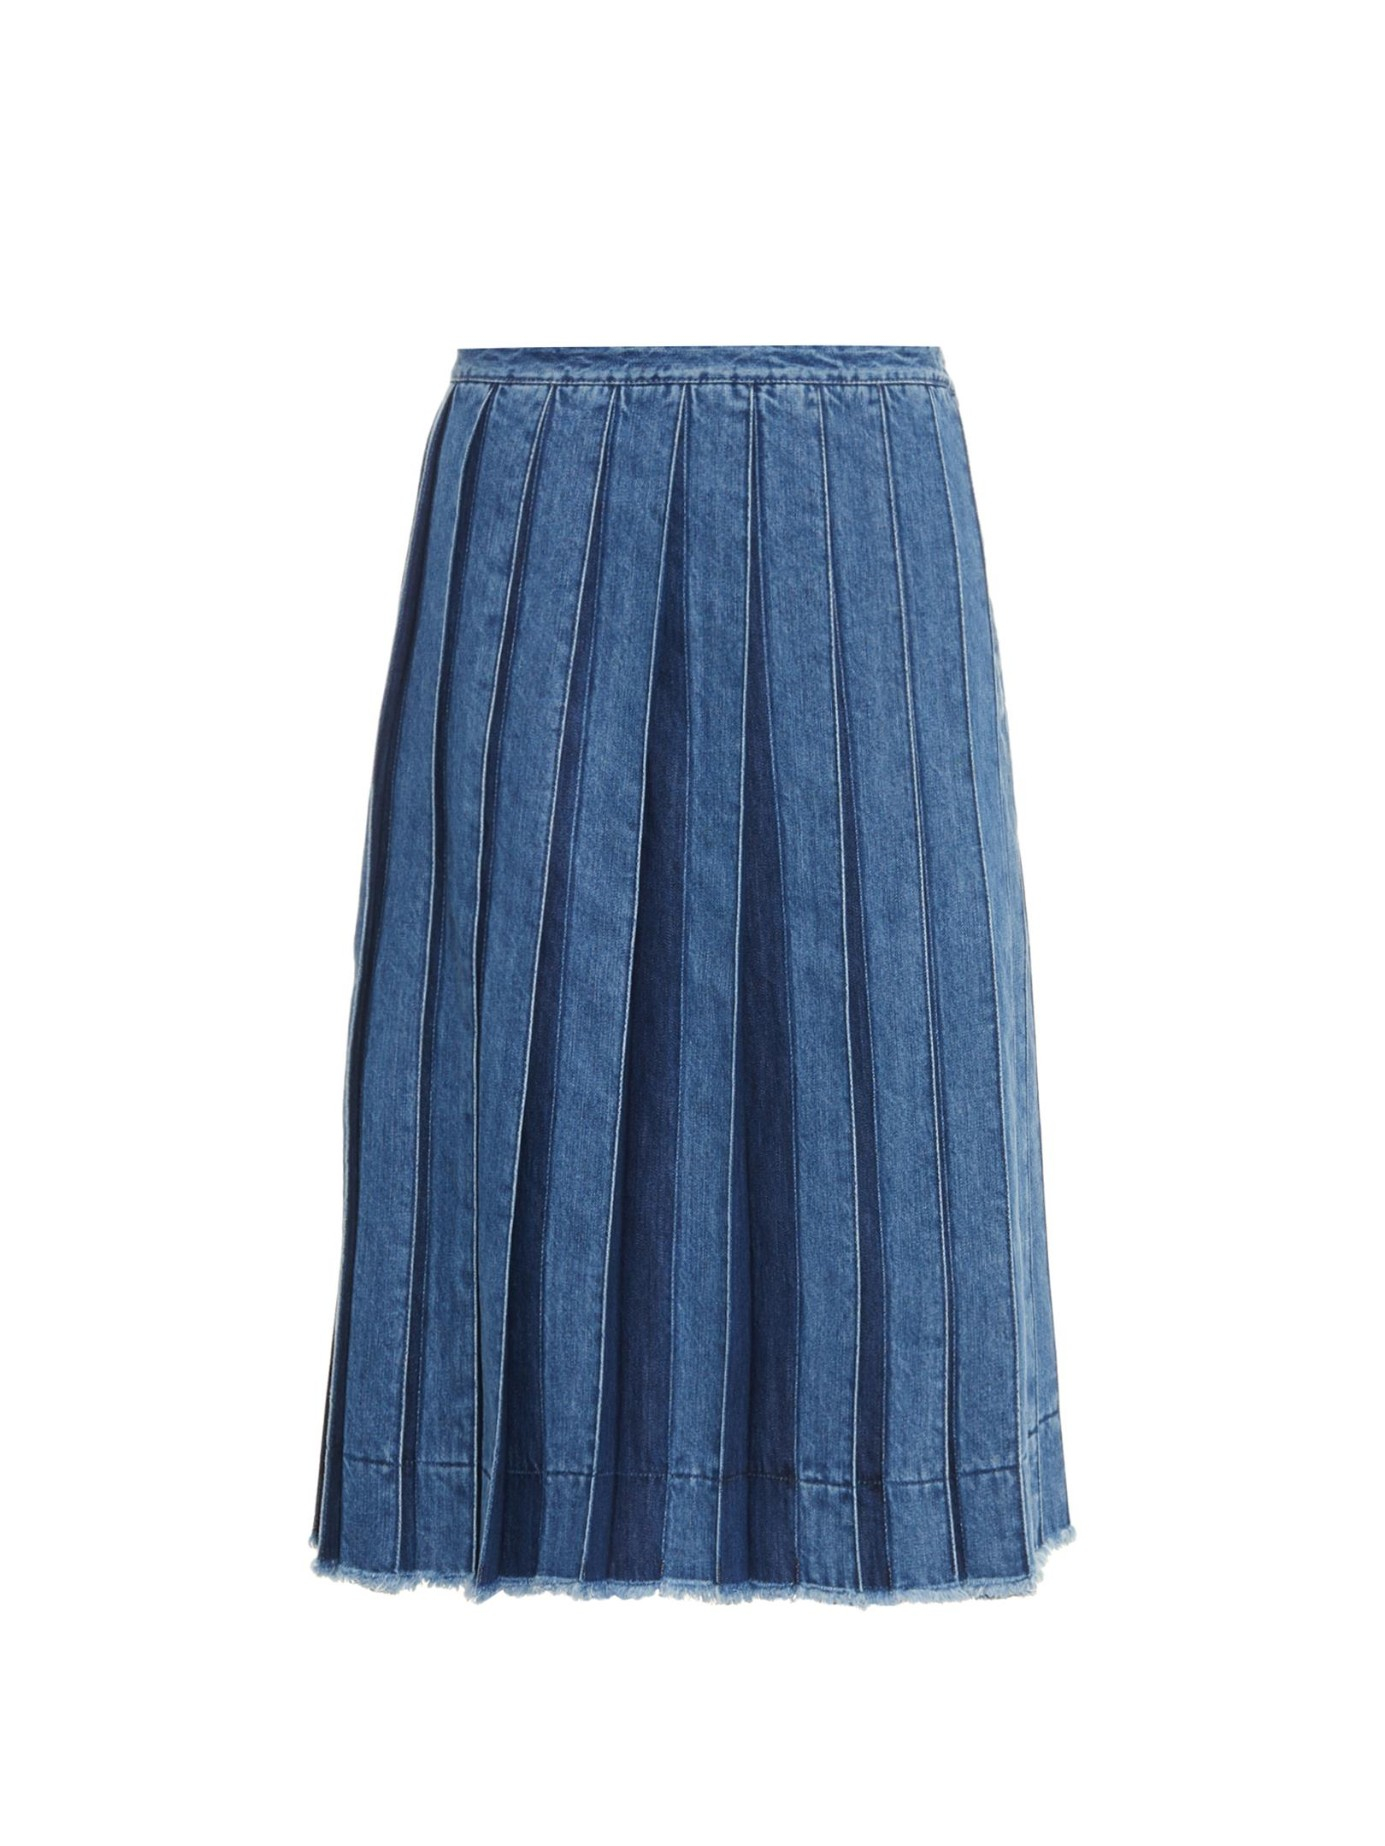 Joseph Pleated Denim Skirt in Blue | Lyst